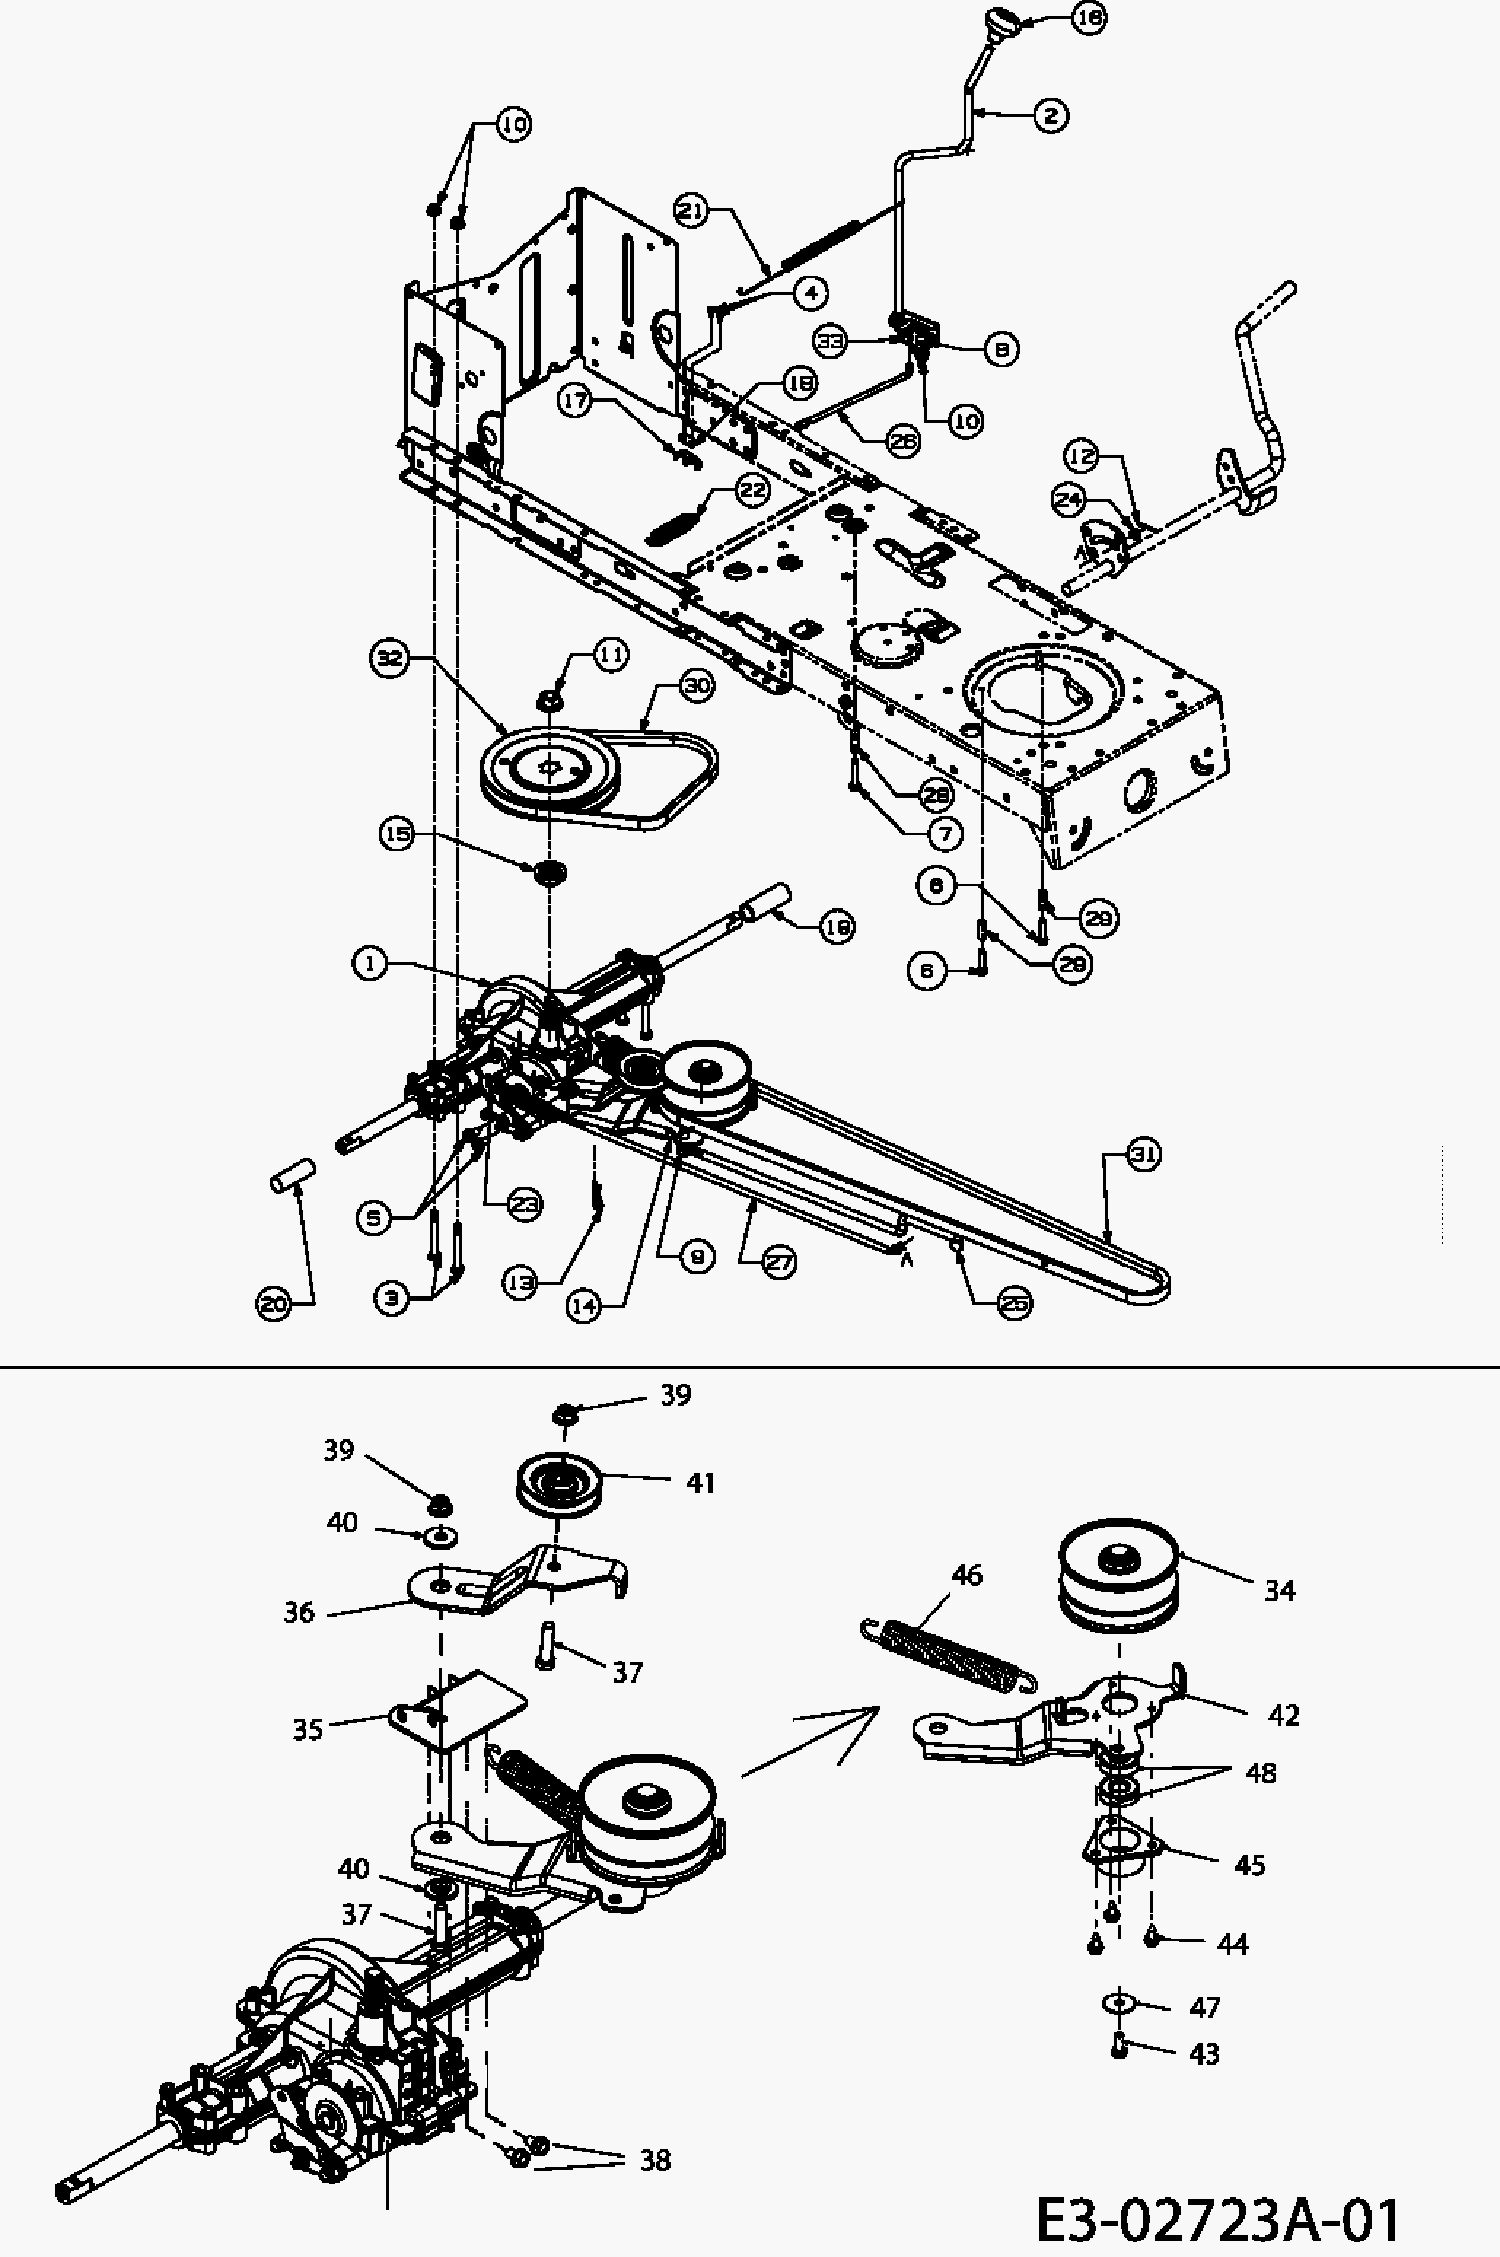 Snow Blower Wiring Diagram on mtd yard machine wiring diagram